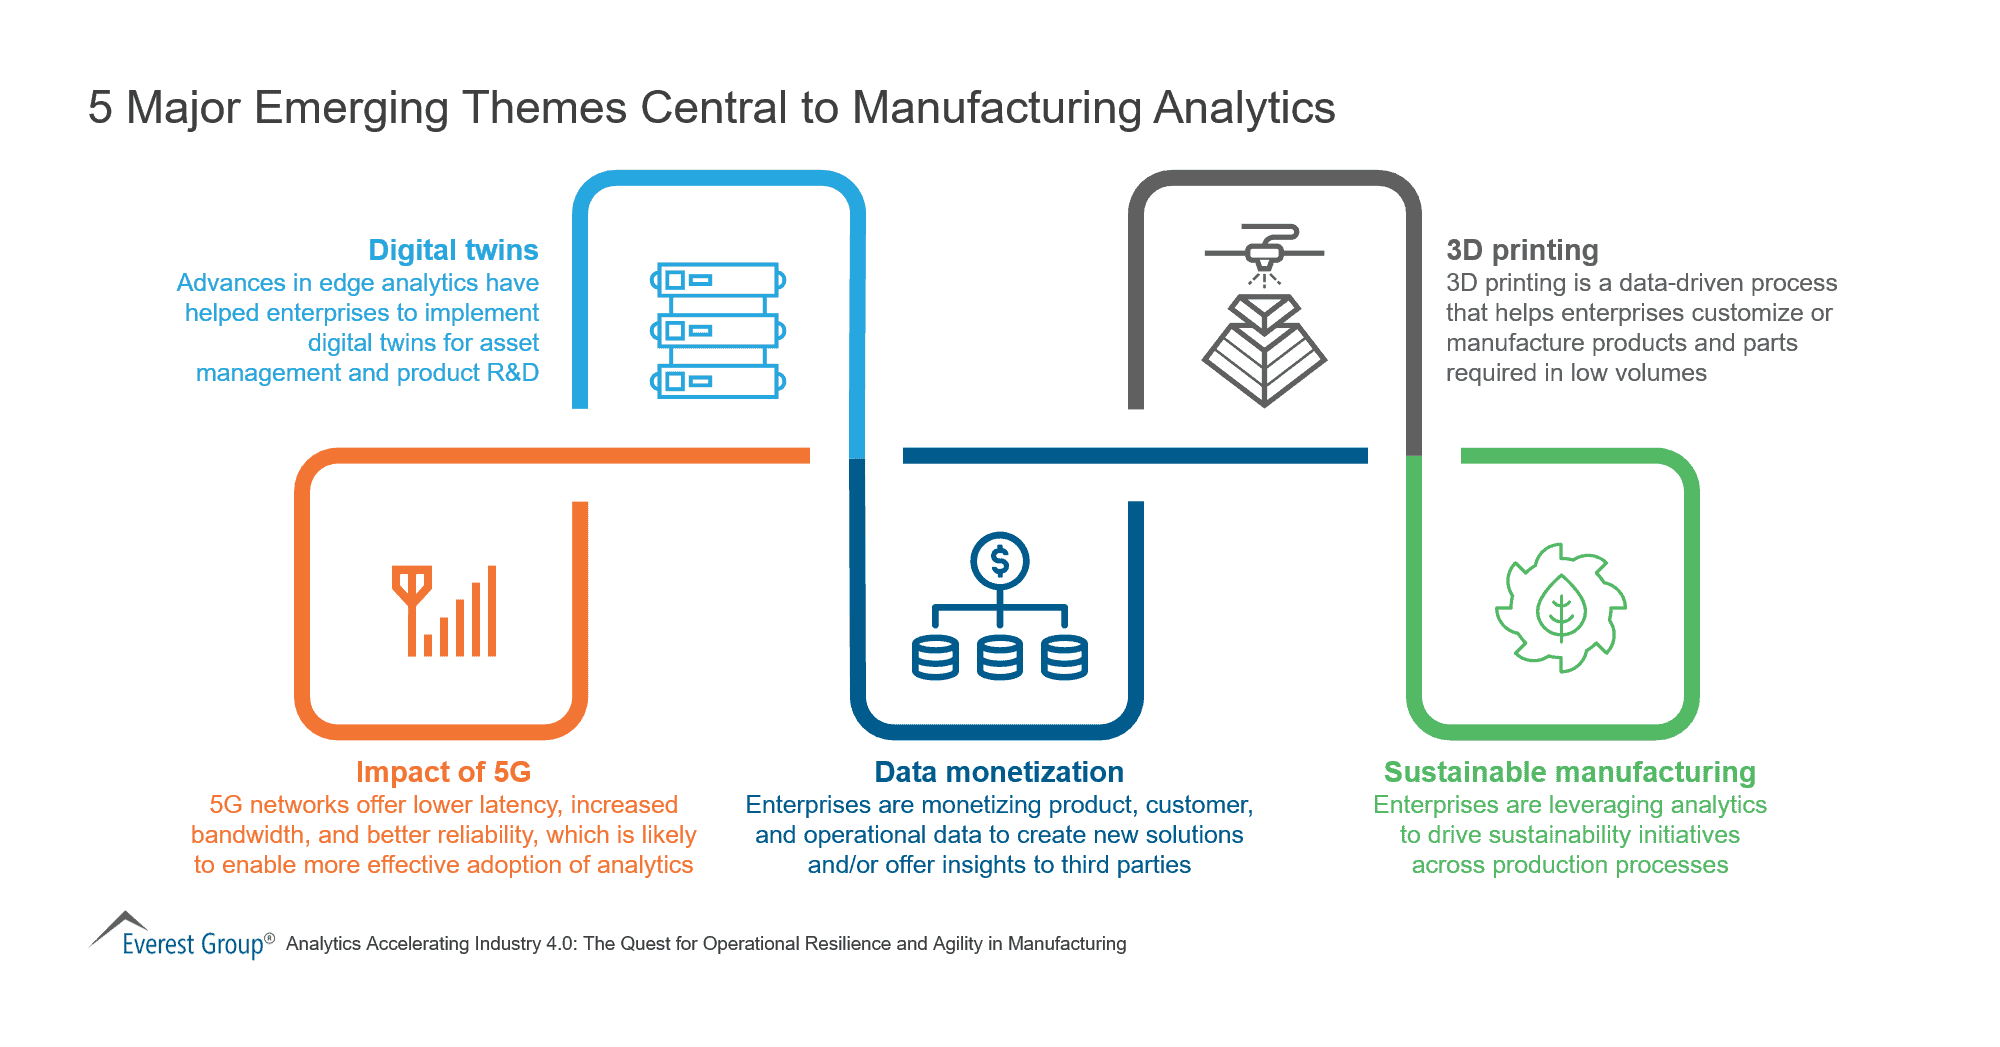 5 Major Emerging Themes Central to Manufacturing Analytics